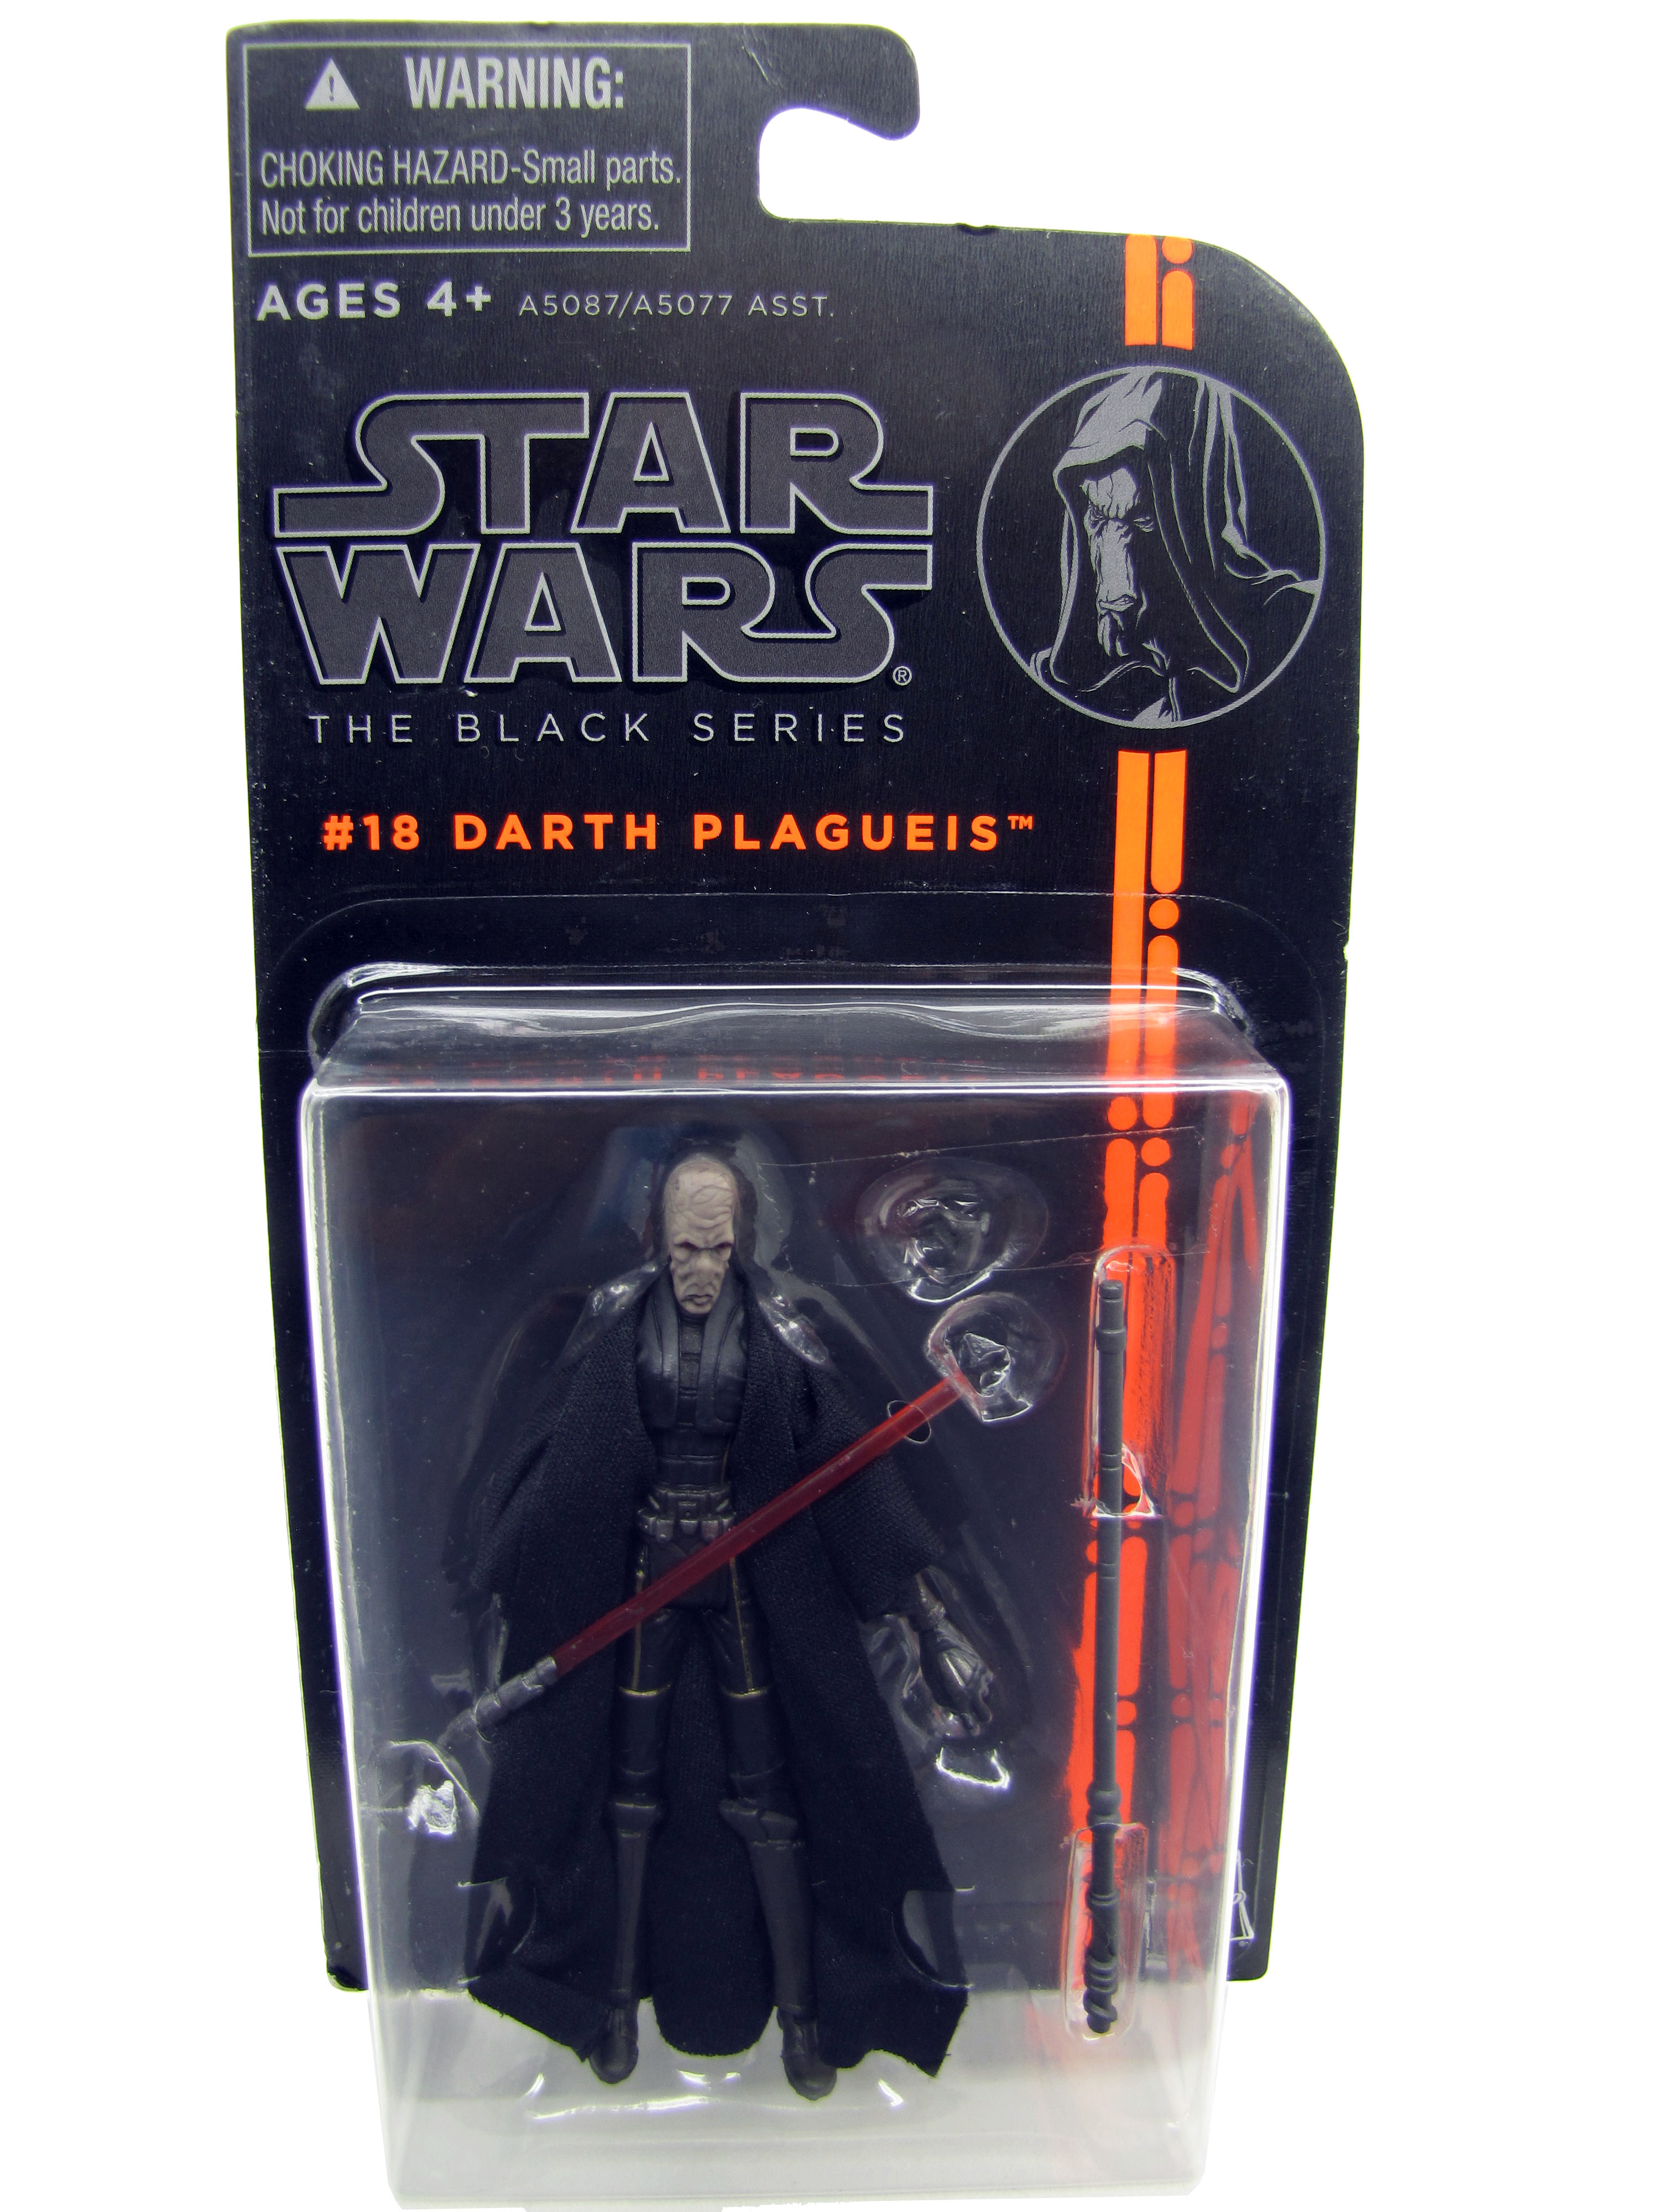 2013 The Black Series #18: Darth Plagueis Sealed Mint on Card